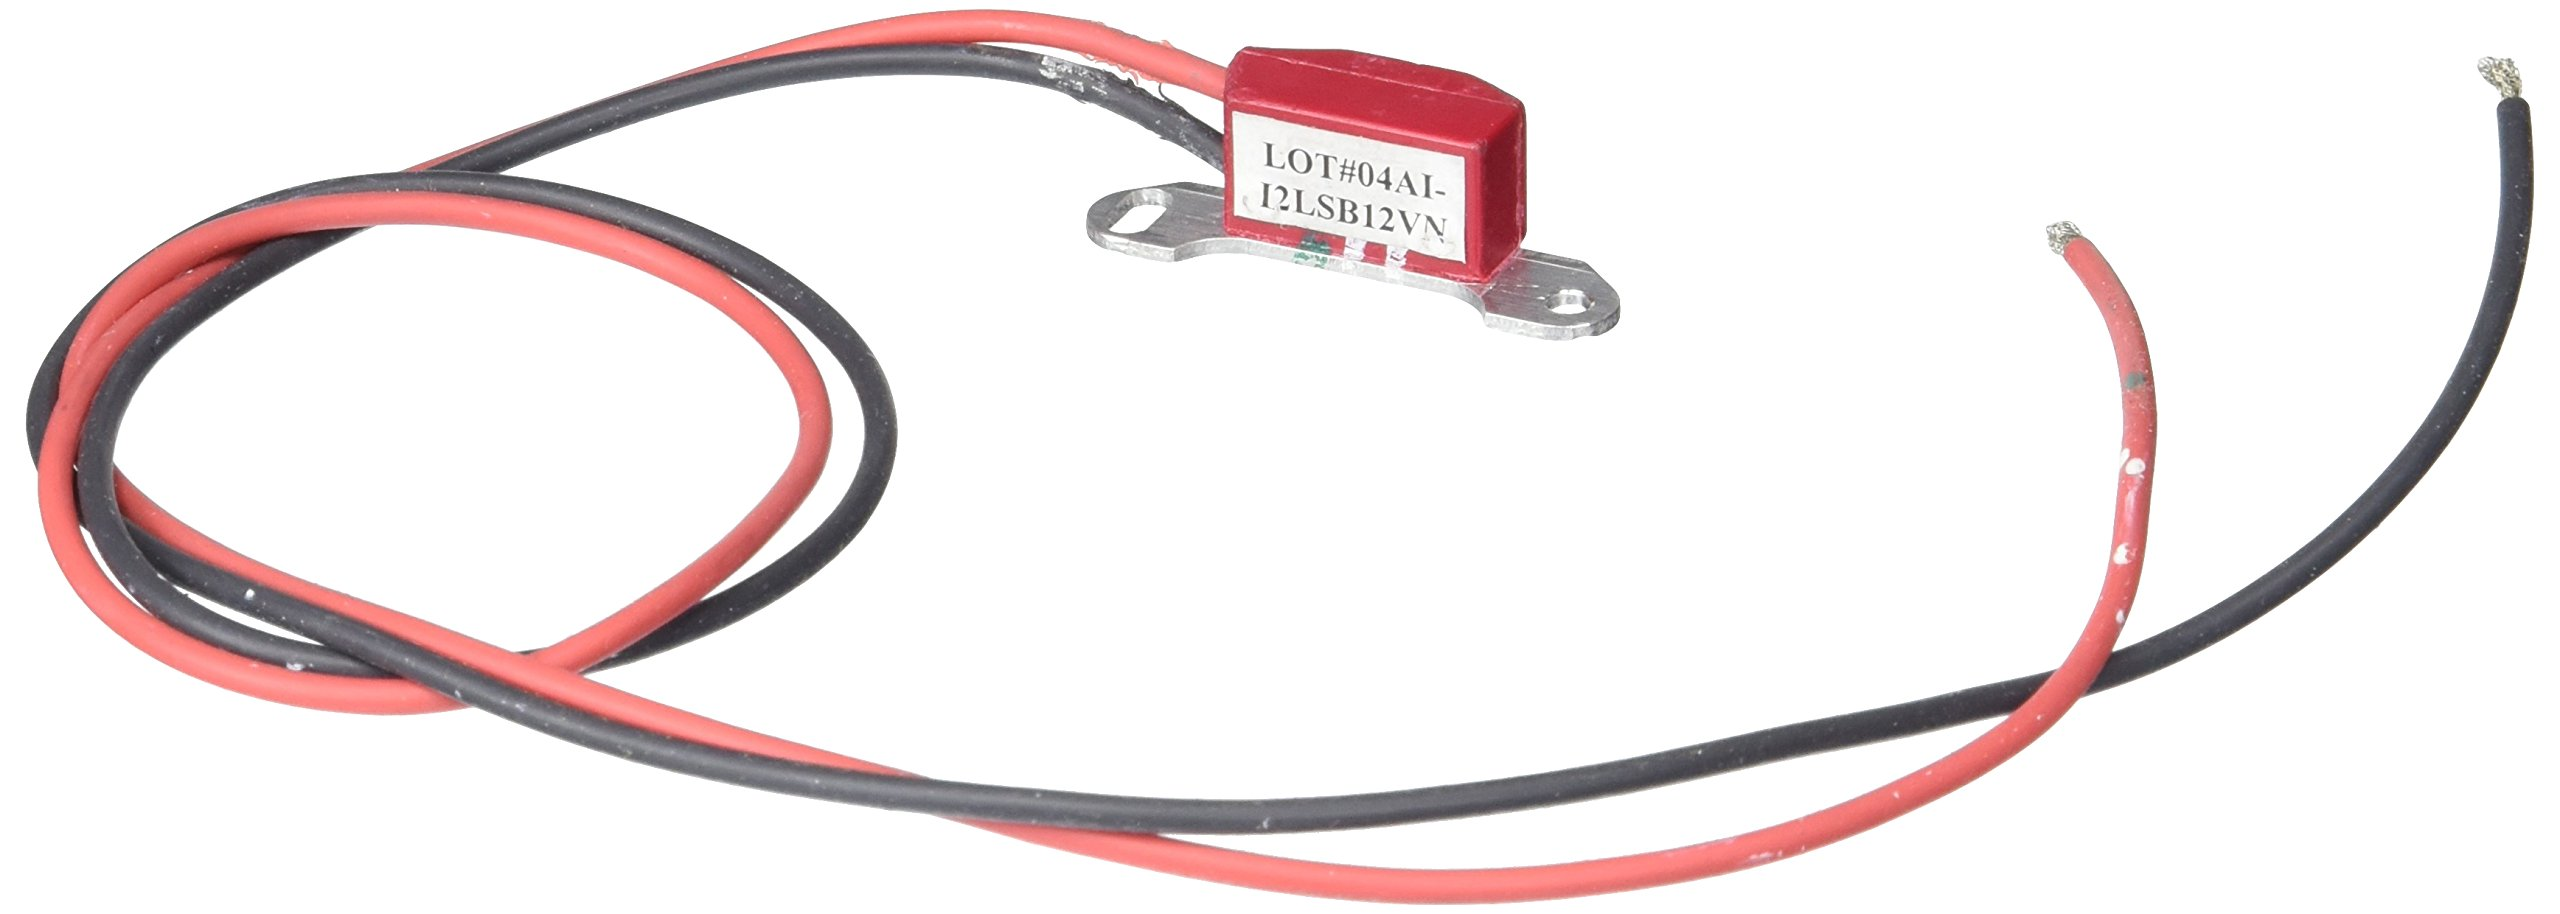 Pertronix 9MR-LS2 Ignitor II for Marelli 4 Cylinder Engine by Pertronix